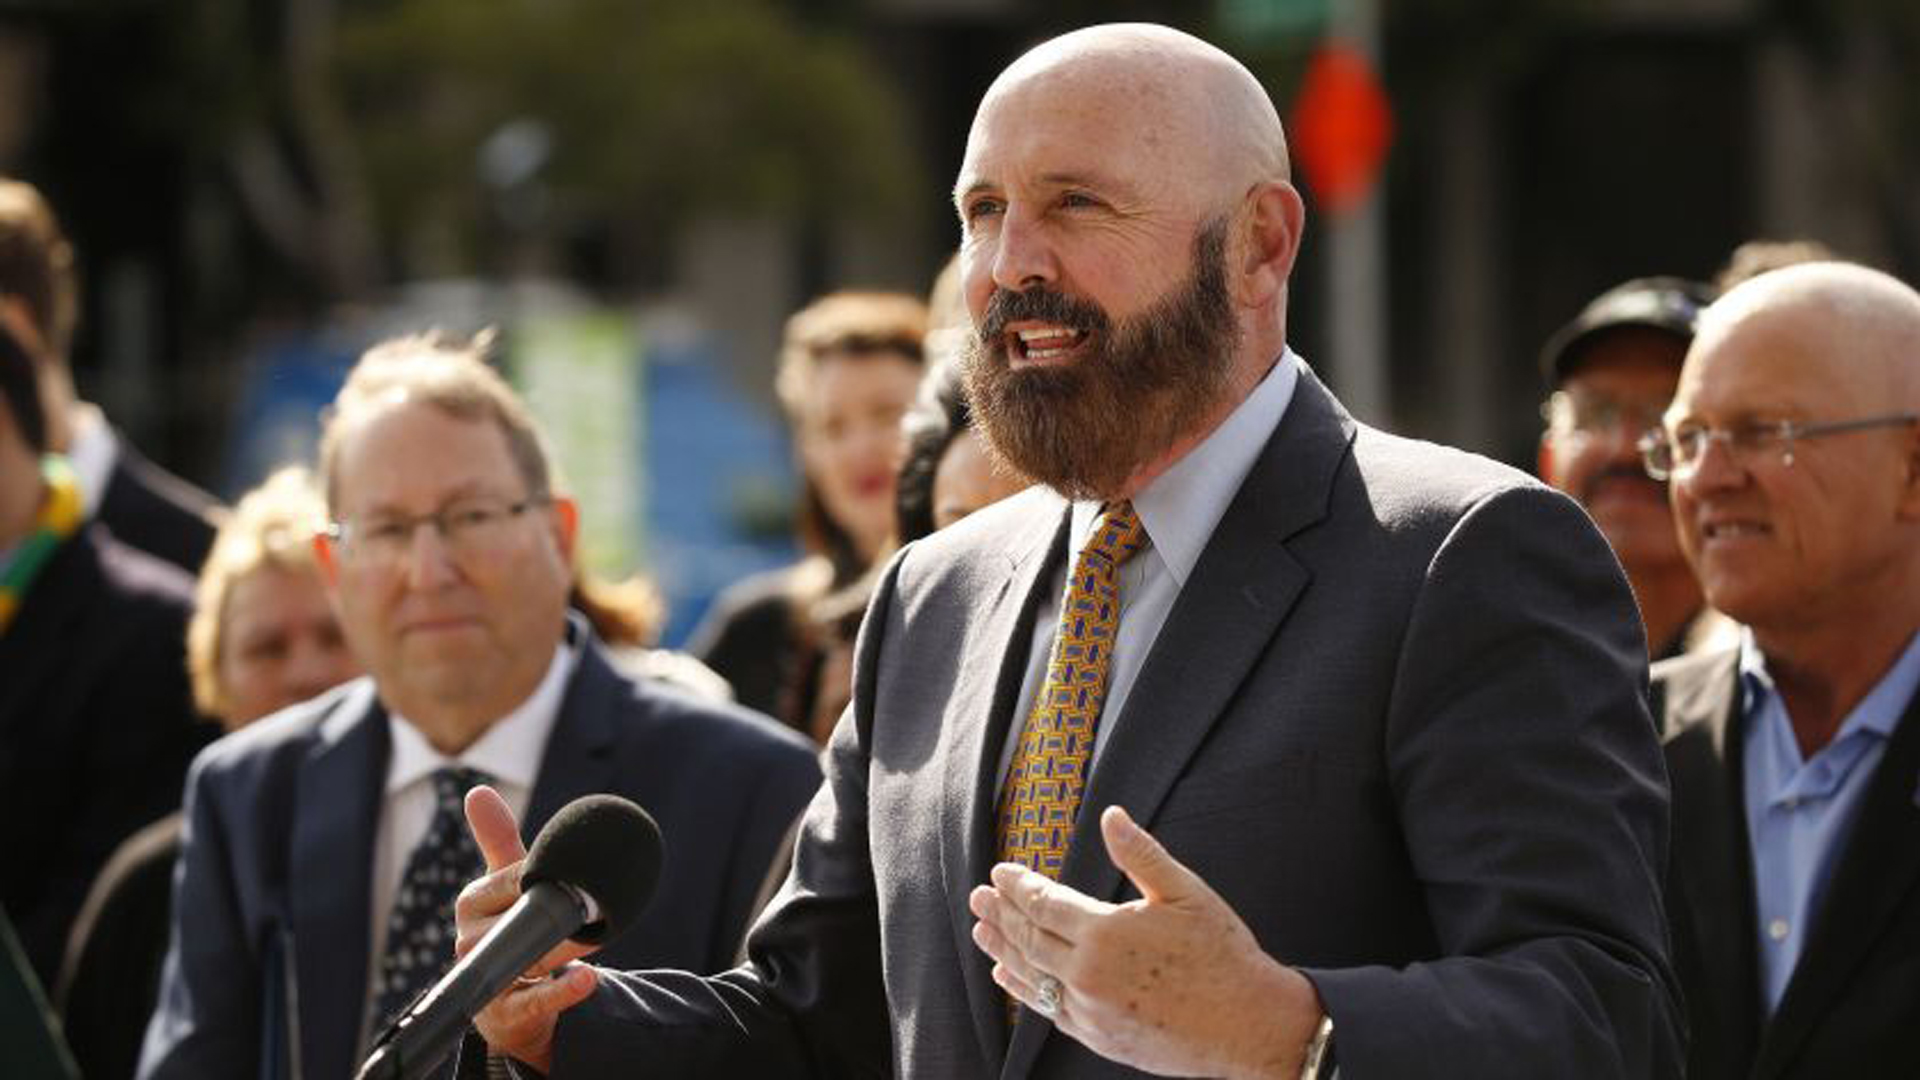 David H. Wright stepped down Tuesday as general manager of the Los Angeles Department of Water and Power, Los Angeles Mayor Eric Garcetti announced.(Credit: Al Seib / Los Angeles Times)